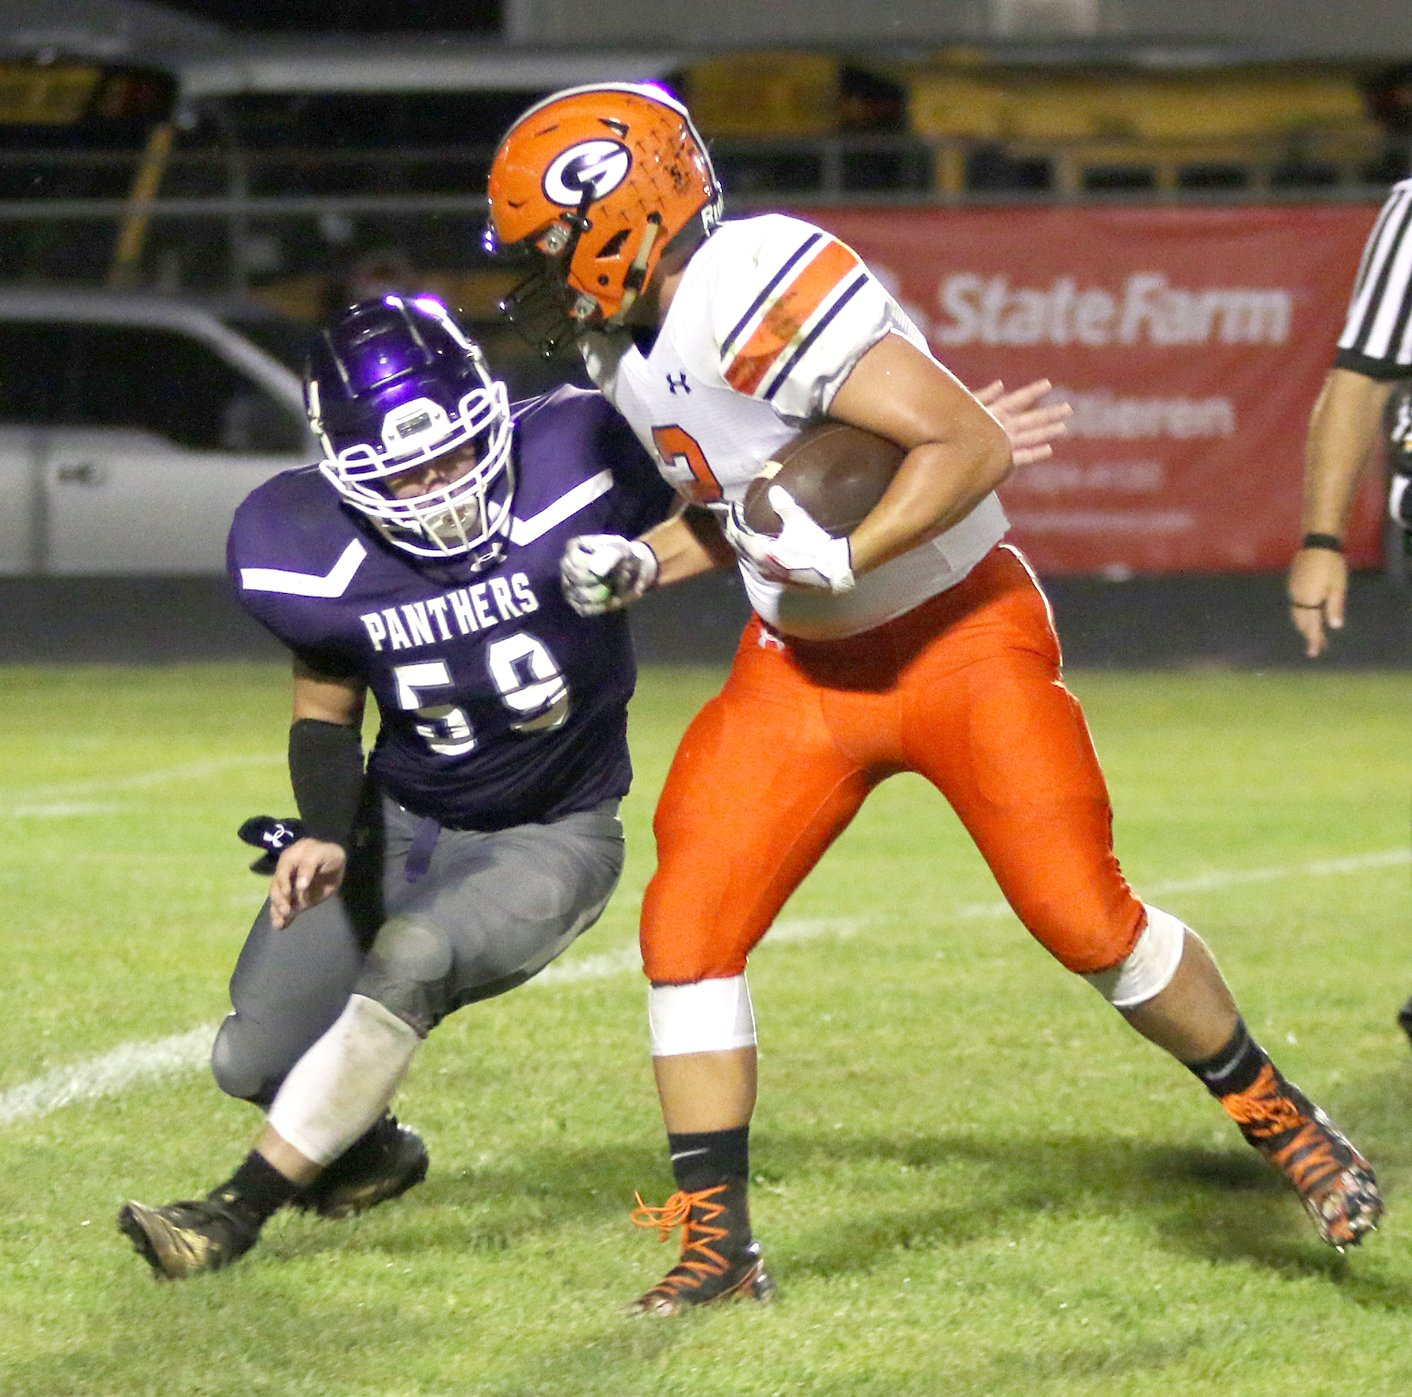 Litchfield's Dylan Maxwell tracks down Gillespie ball carrier Daniel Bertolino during the week two clash in Litchfield on Friday, Sept. 6. Maxwell led the Panthers in tackles with ten in a game that saw the Miners come away with a 49-6 victory following a strong second half.